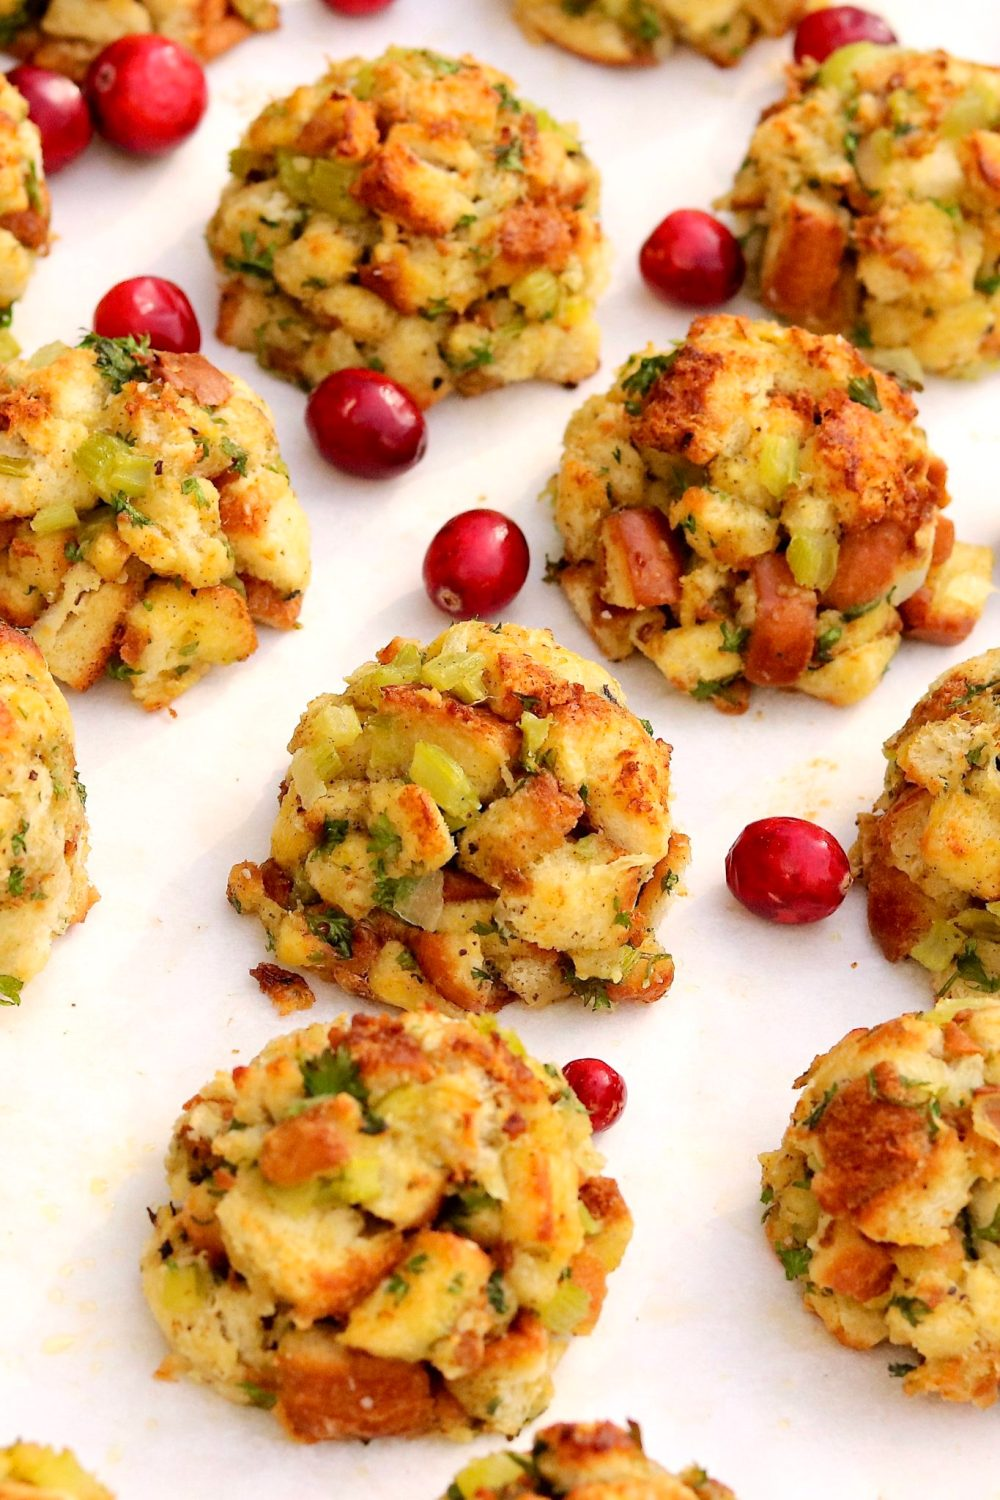 Stuffing Balls  -  Clever, portion-controlled, and a surefire hit on a holiday table or alongside a variety of poultry and pork dishes throughout the year. They're easy to make for any size crowd and offer prep-ahead convenience.